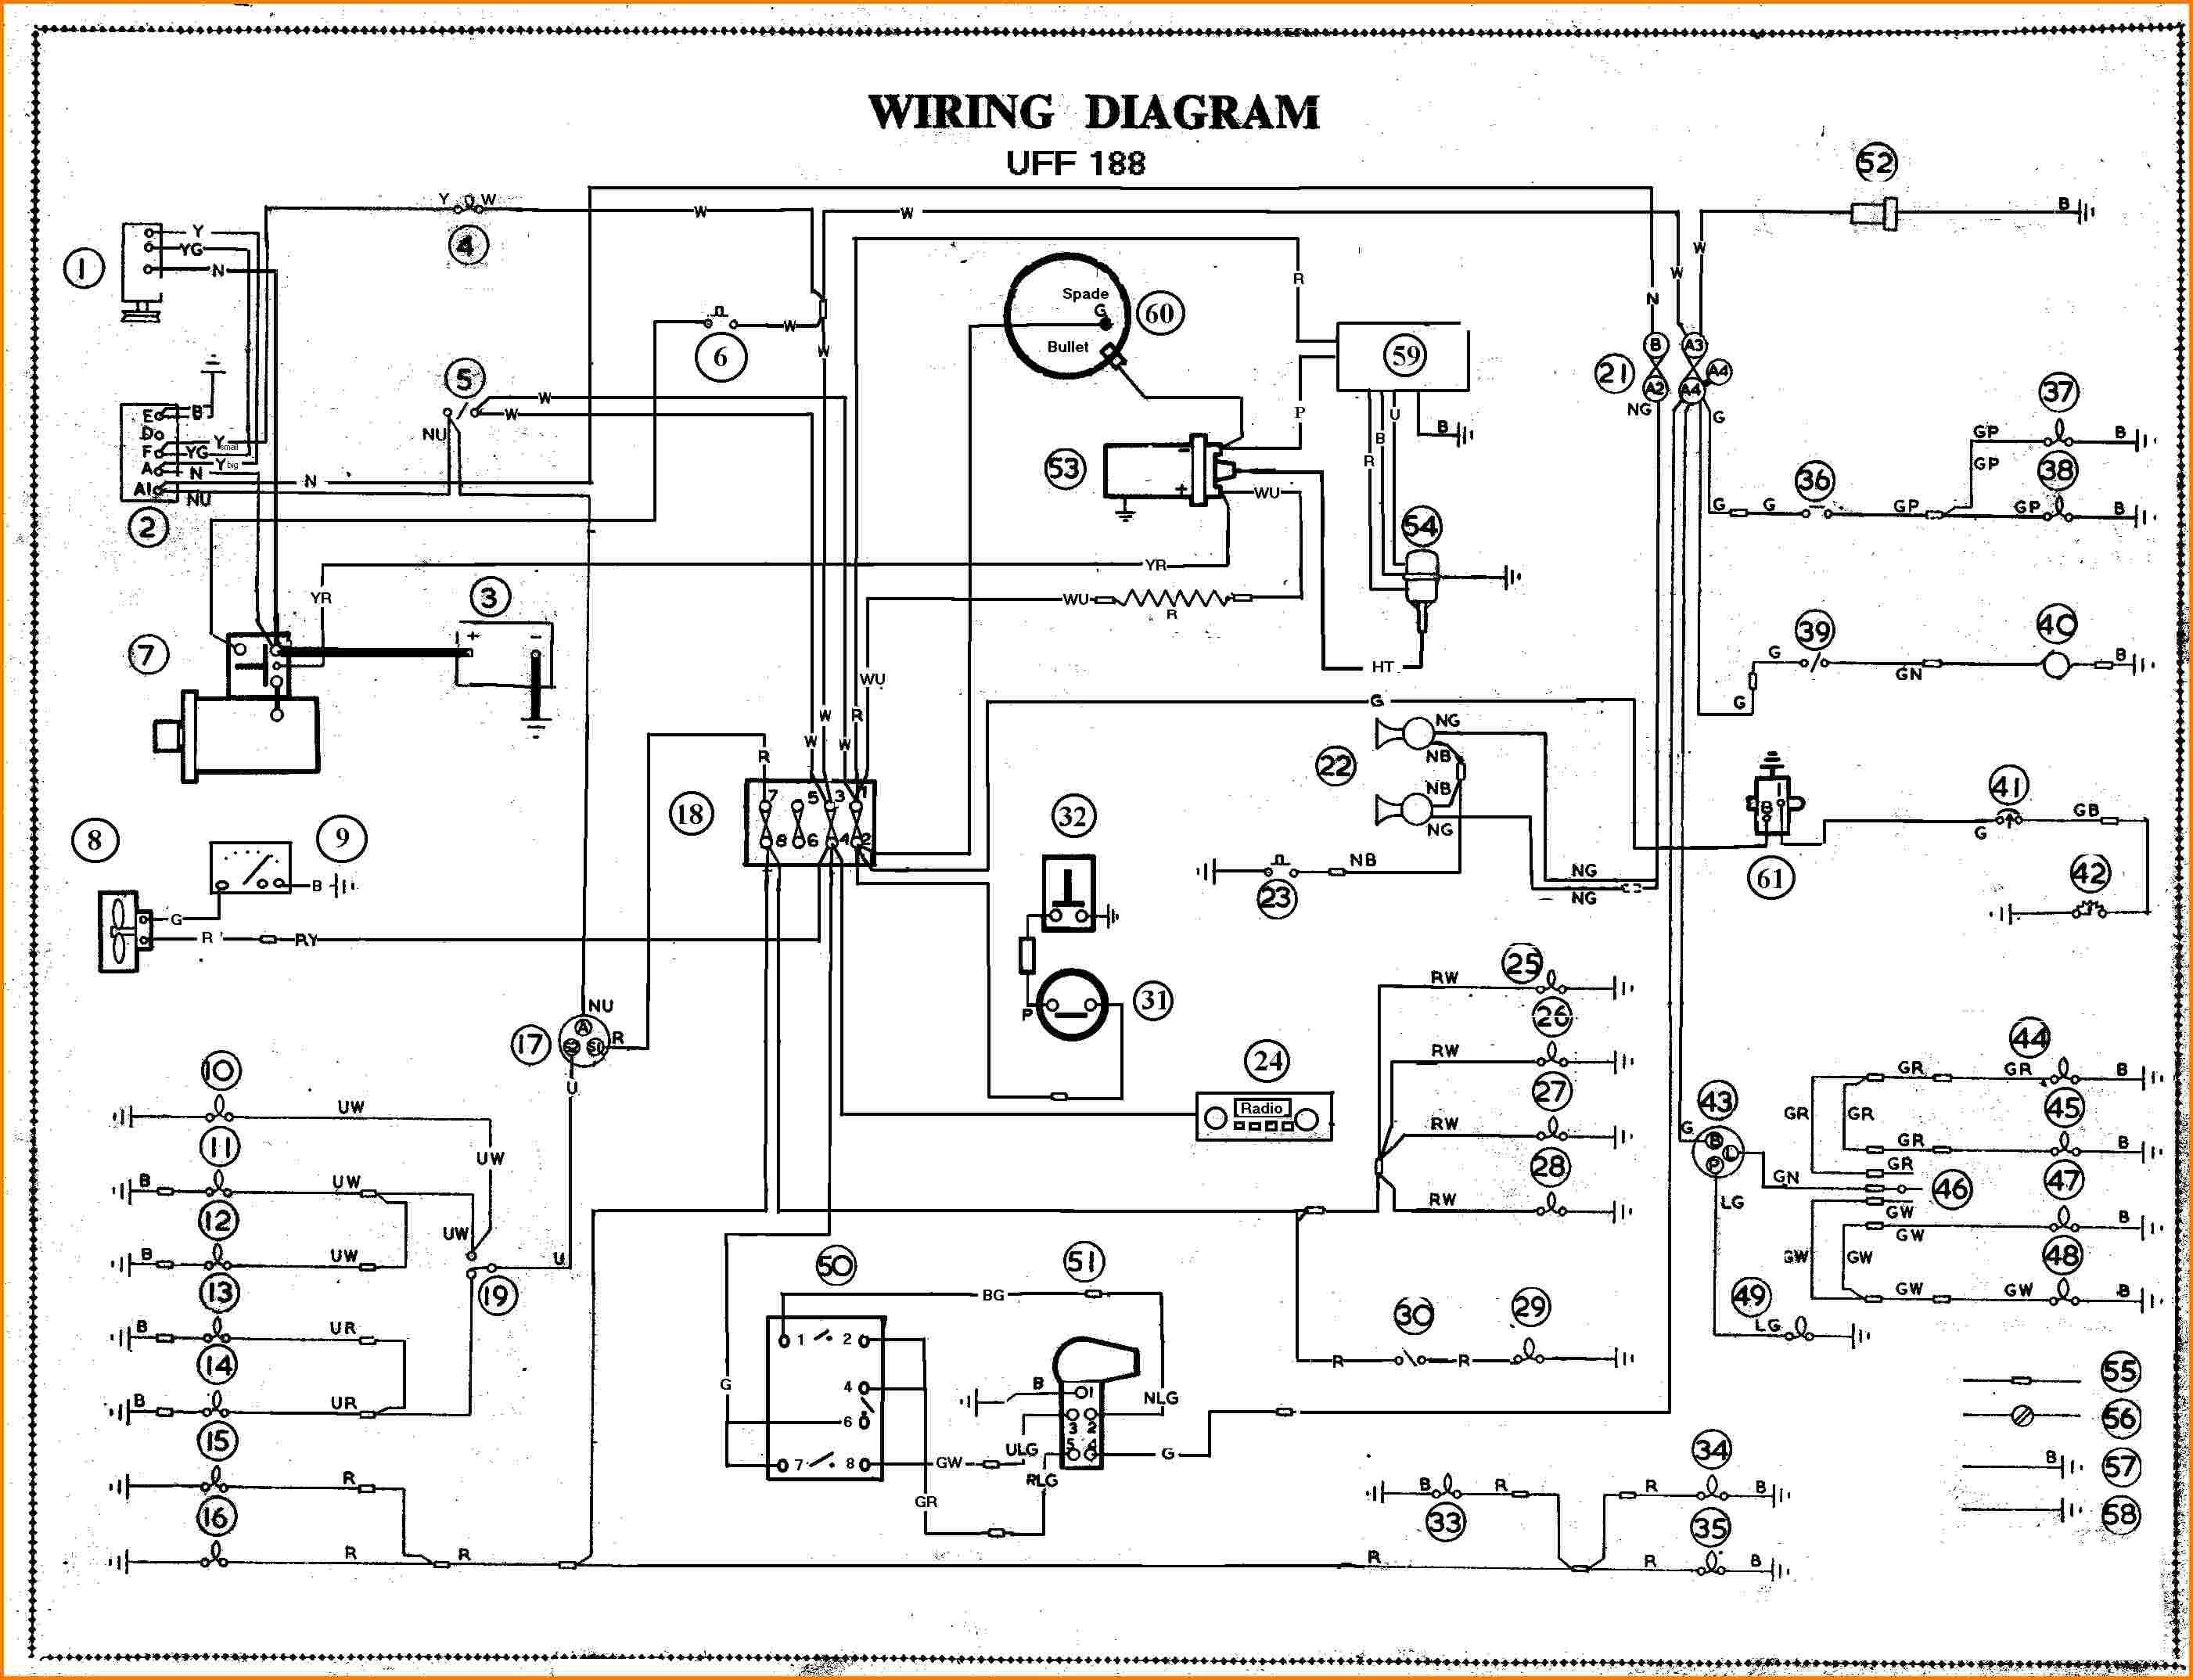 simple race car wiring schematic Download-Wiring Diagram for Legend Race Car Fresh Unique Automotive Electrical Wiring Diagrams Diagram 16-o